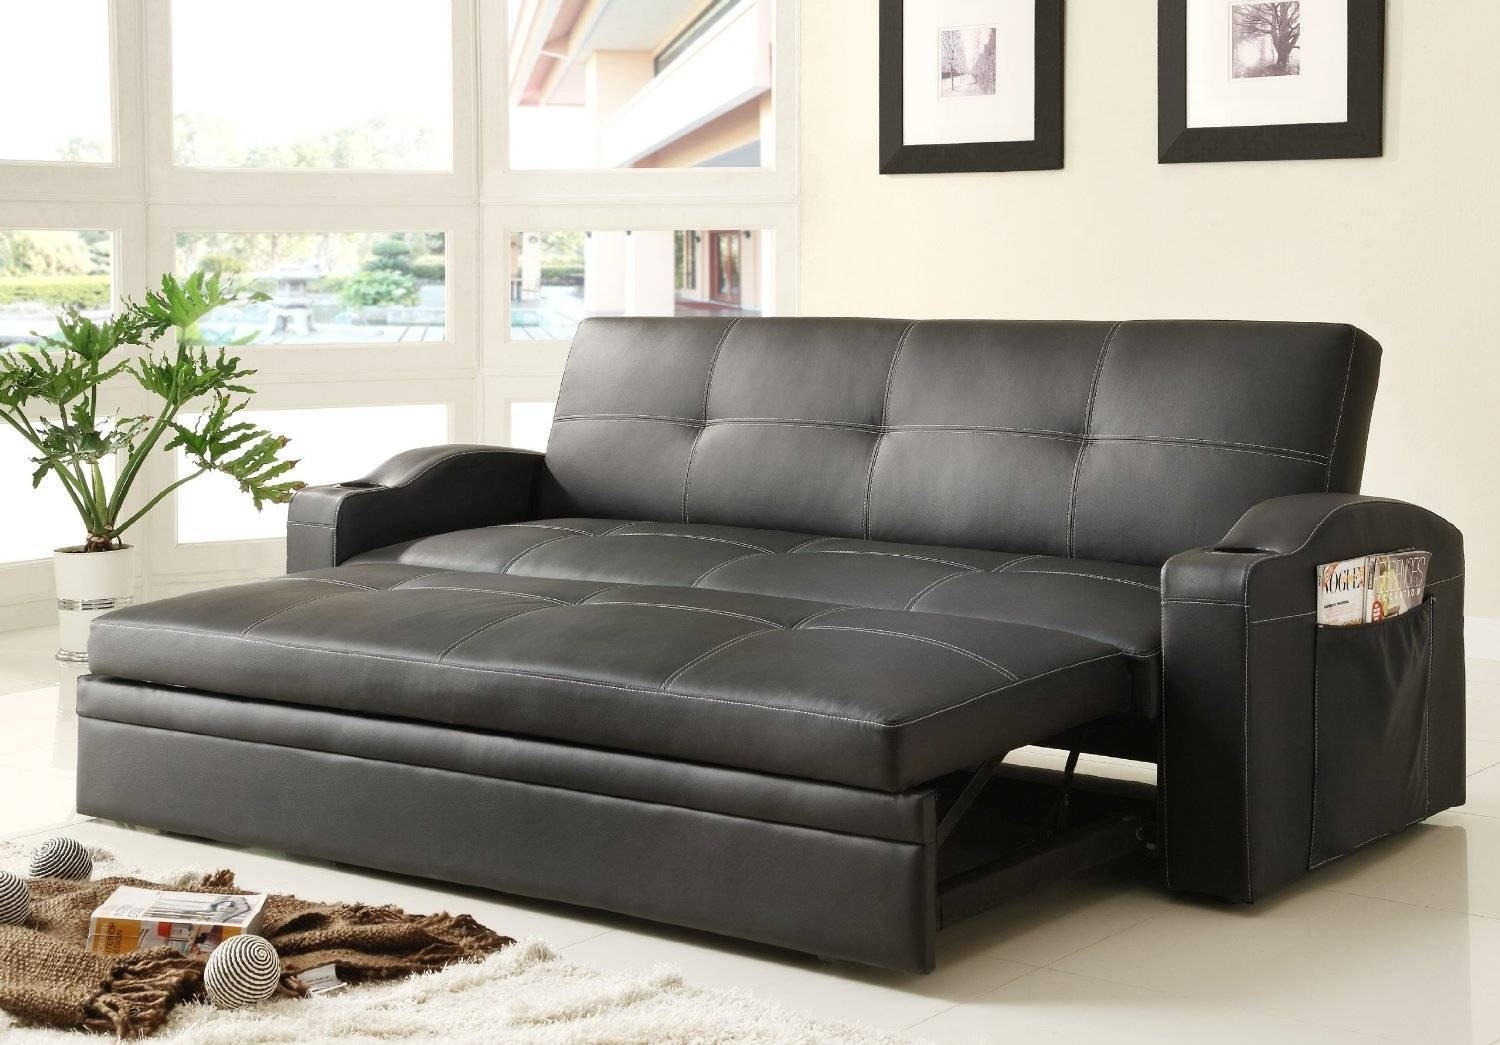 Small Black Leather Sofa Bed | Centerfieldbar within Small Black Futon Sofa Beds (Image 13 of 15)